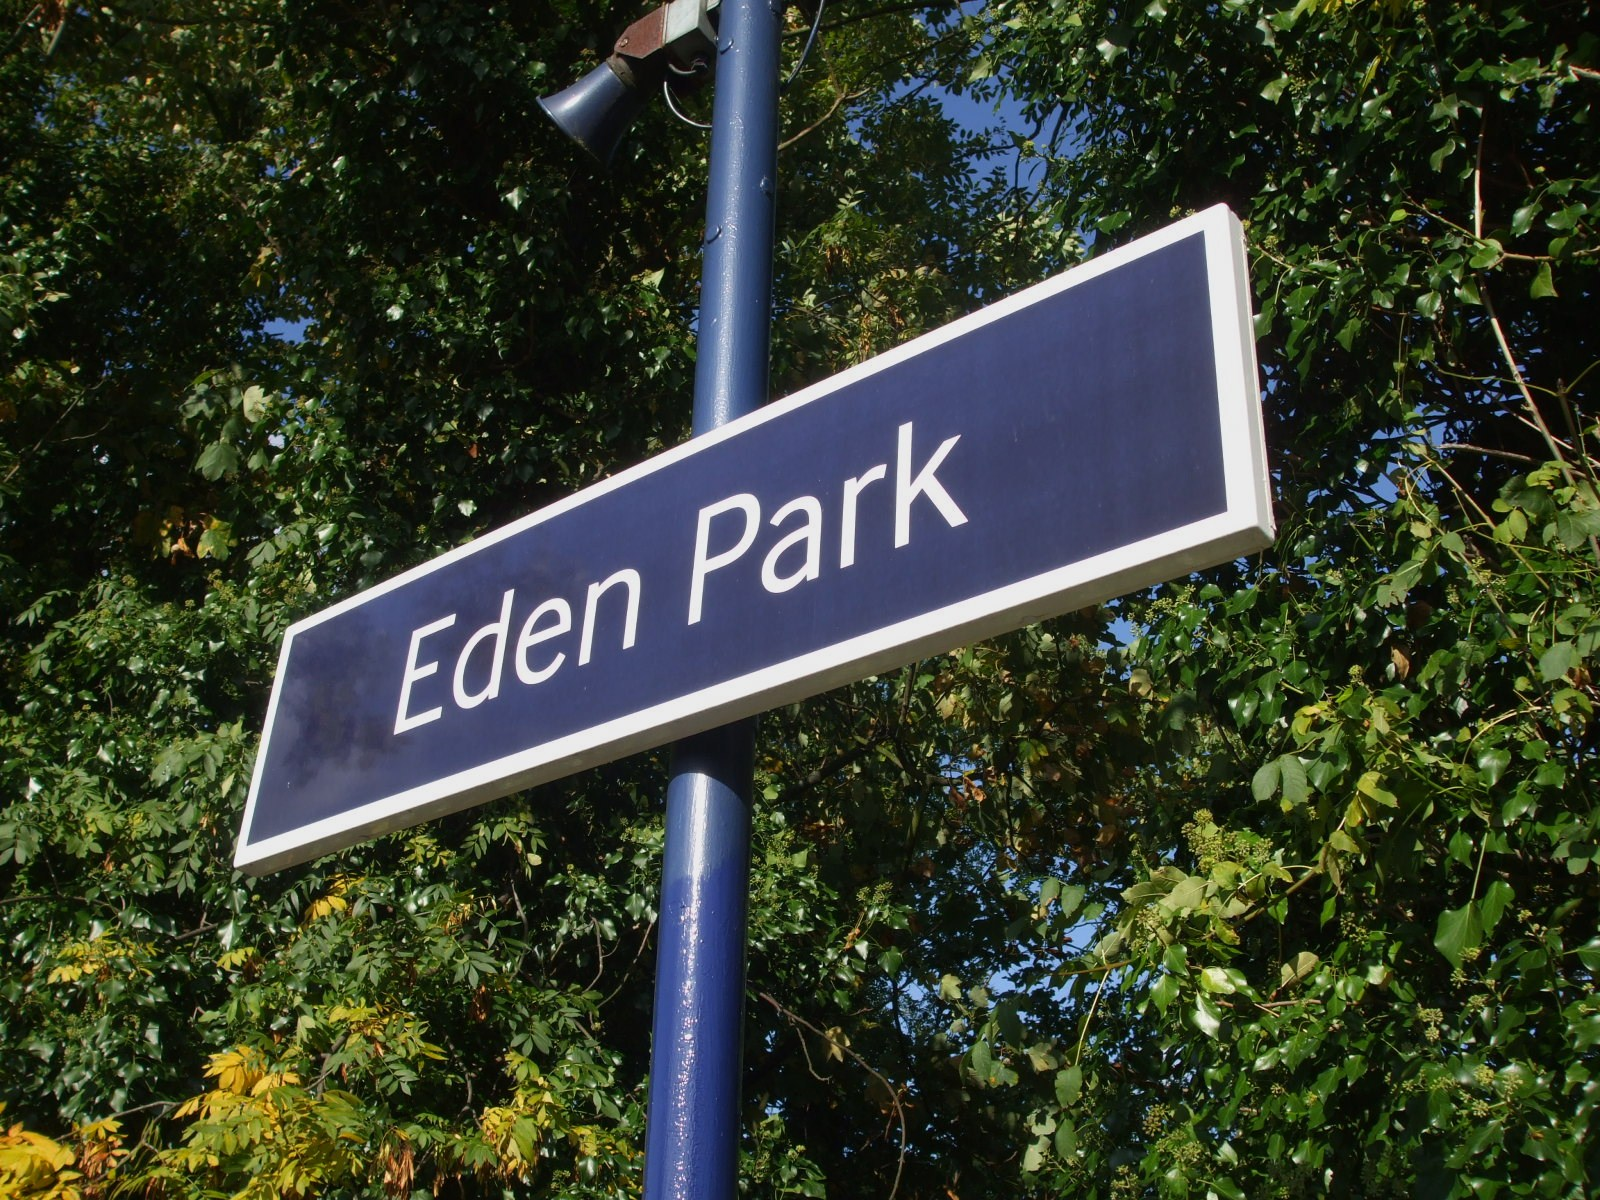 Description Eden Park stn signage.JPG